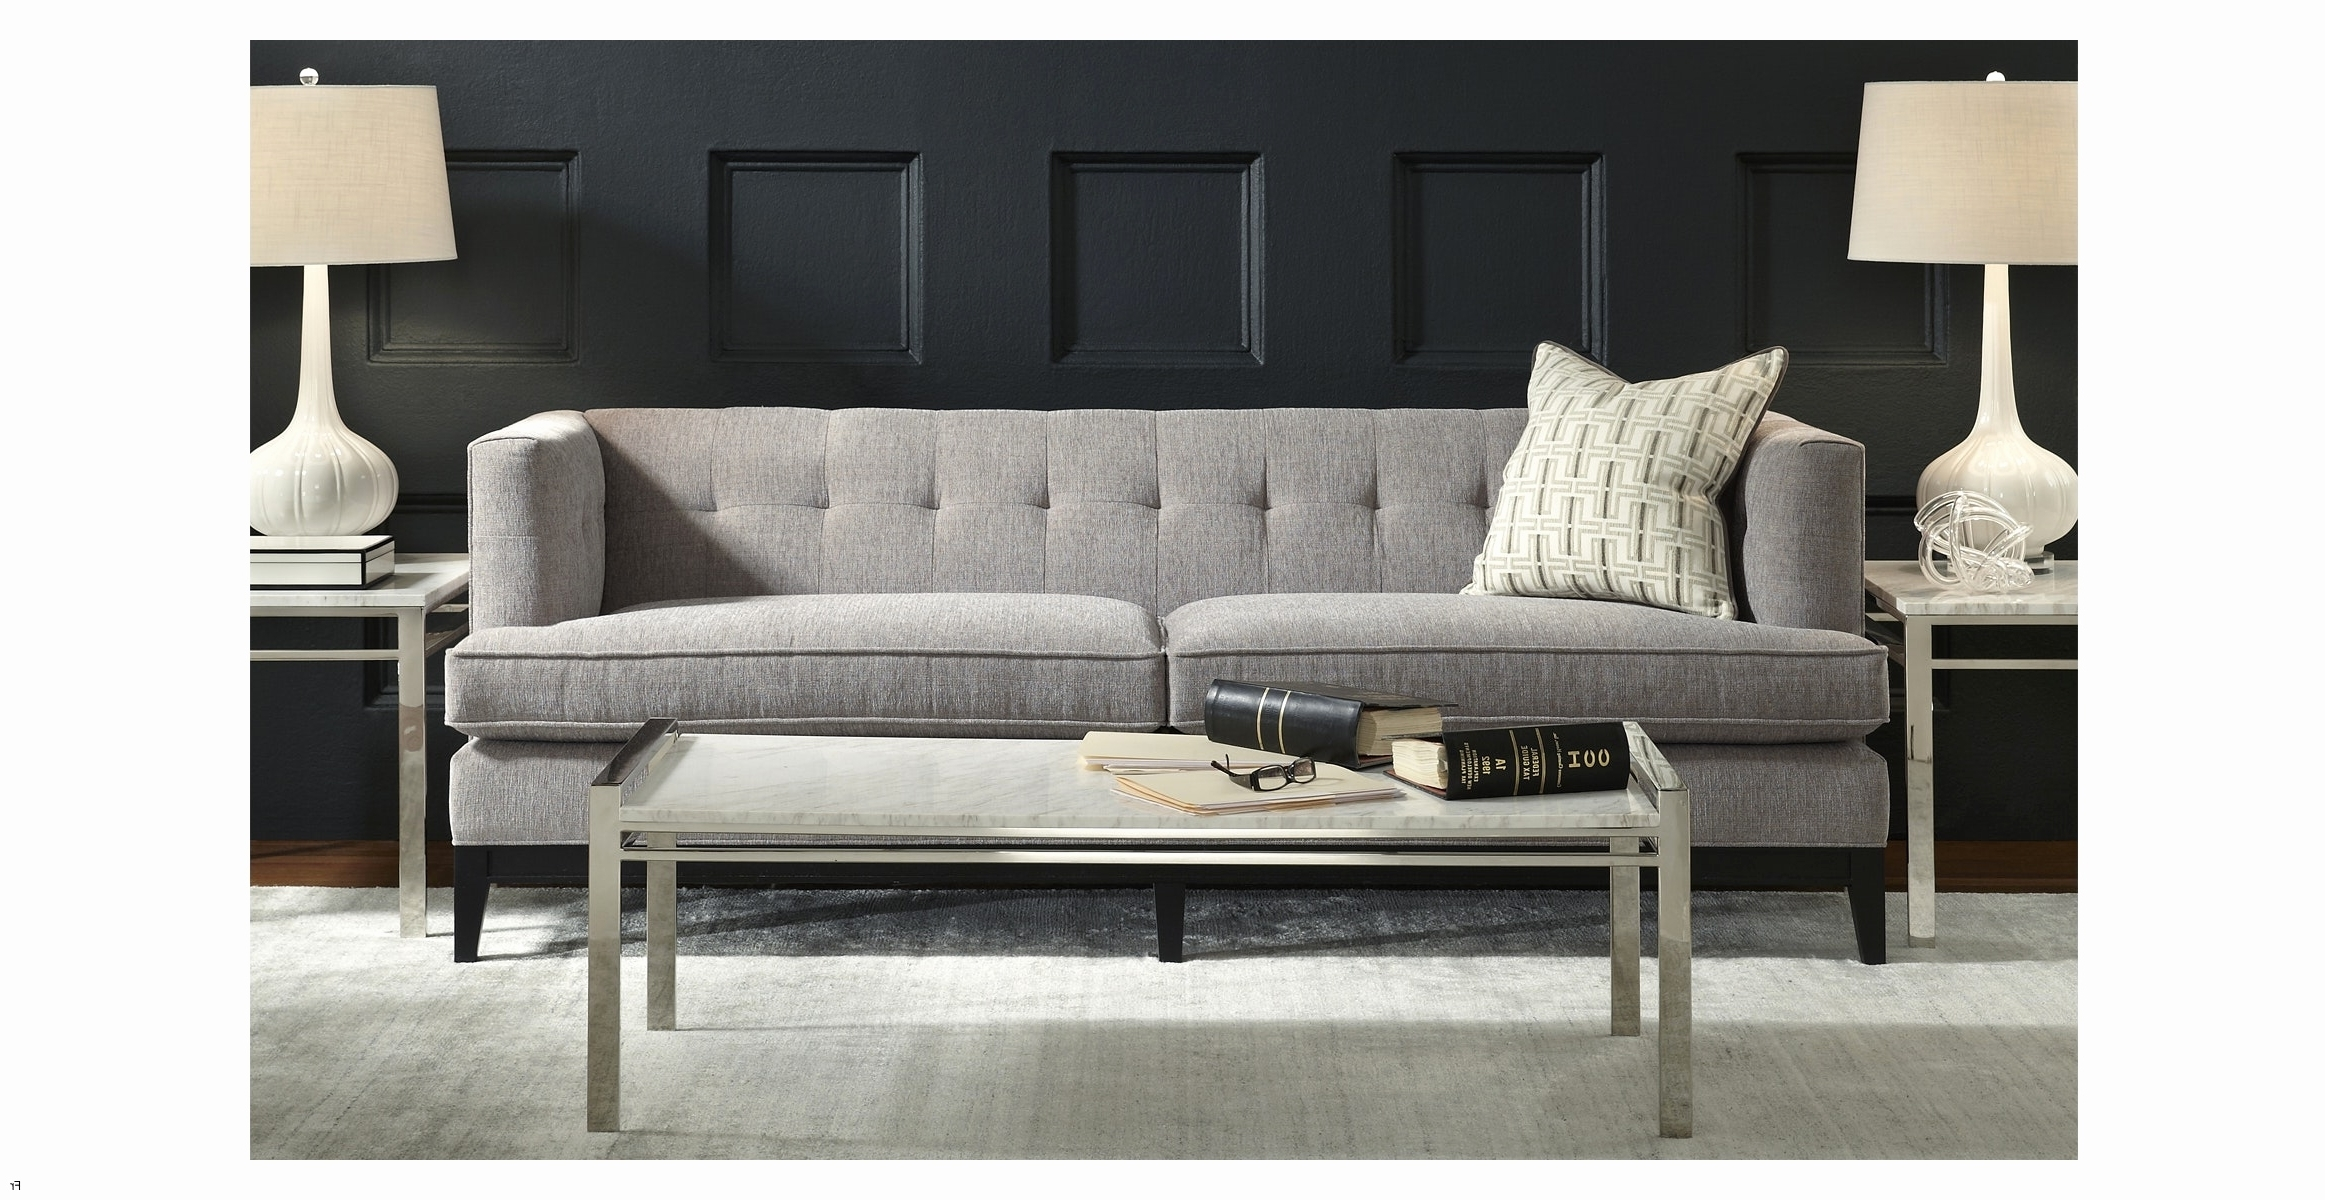 Best Mitchell Gold Sleeper Sofa Price 2018 – Couches And Sofas Ideas With Most Up To Date Mitchell Gold Sofas (View 5 of 15)